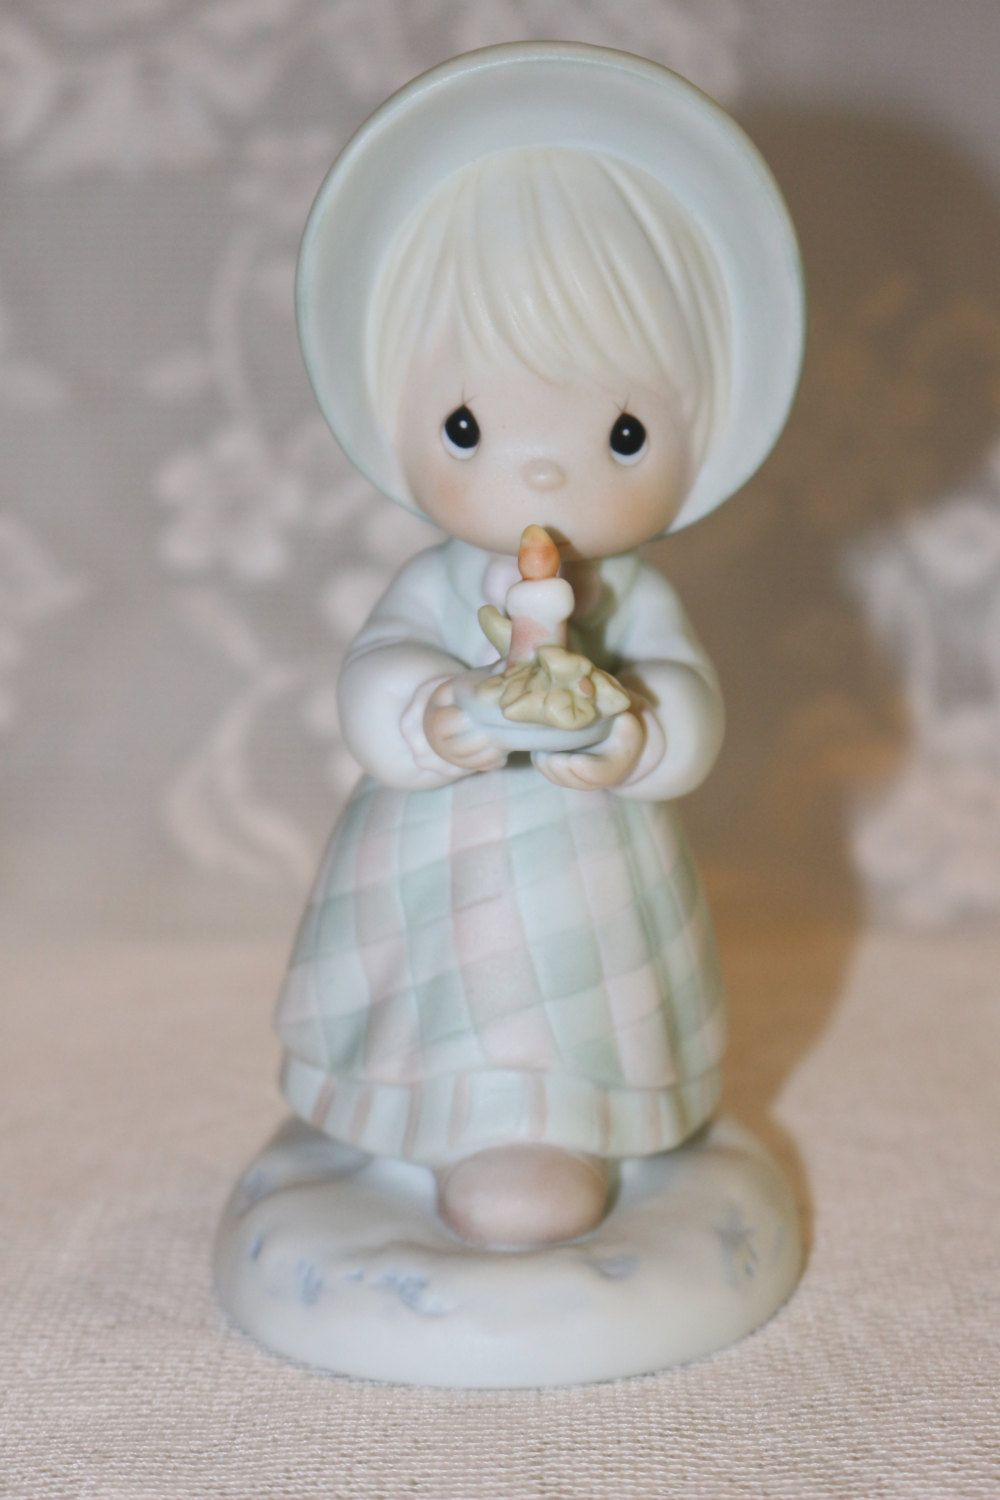 Precious Moments 1988 December Porcelain Enesco Figurine of the Month Sam…